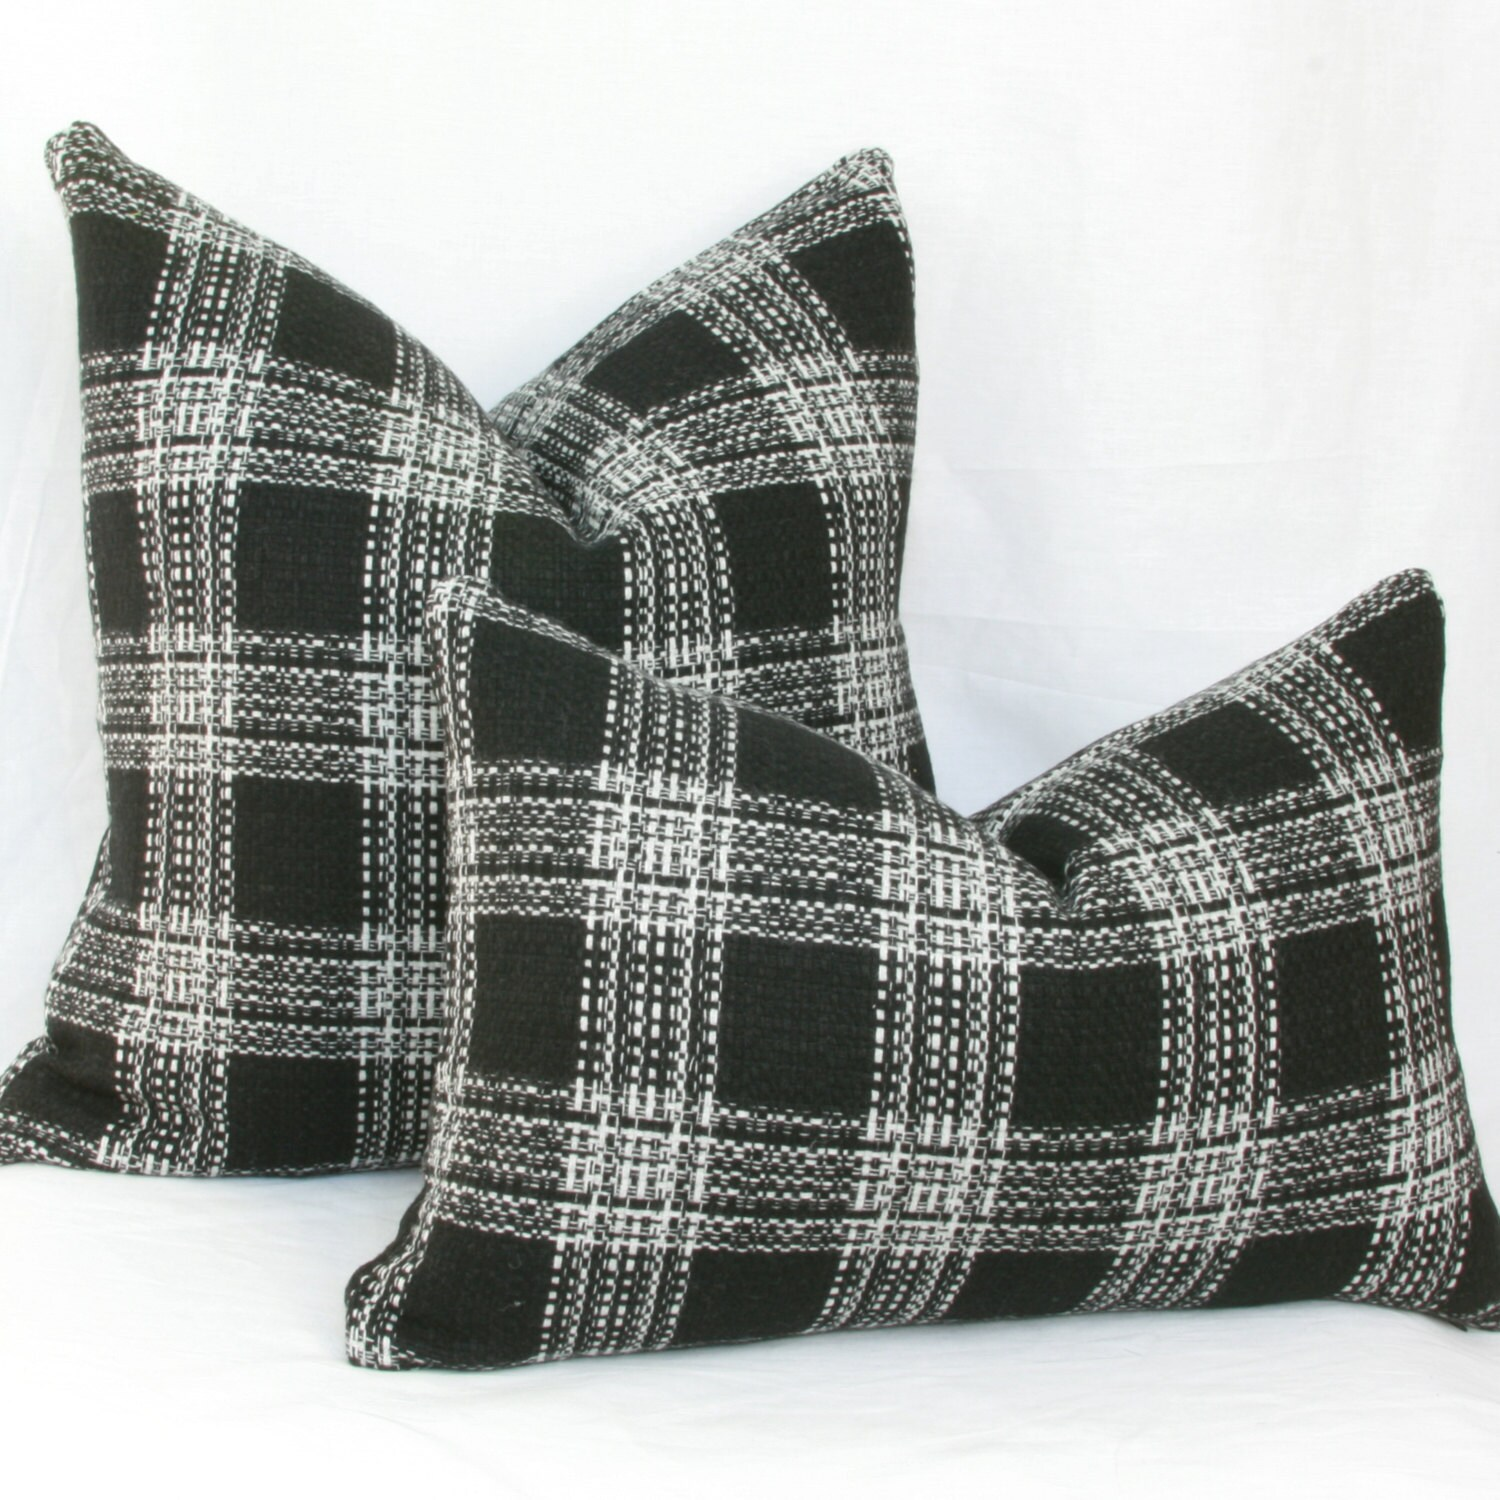 Black Plaid Throw Pillows : Black & white wool plaid decorative throw pillow cover. 18 x